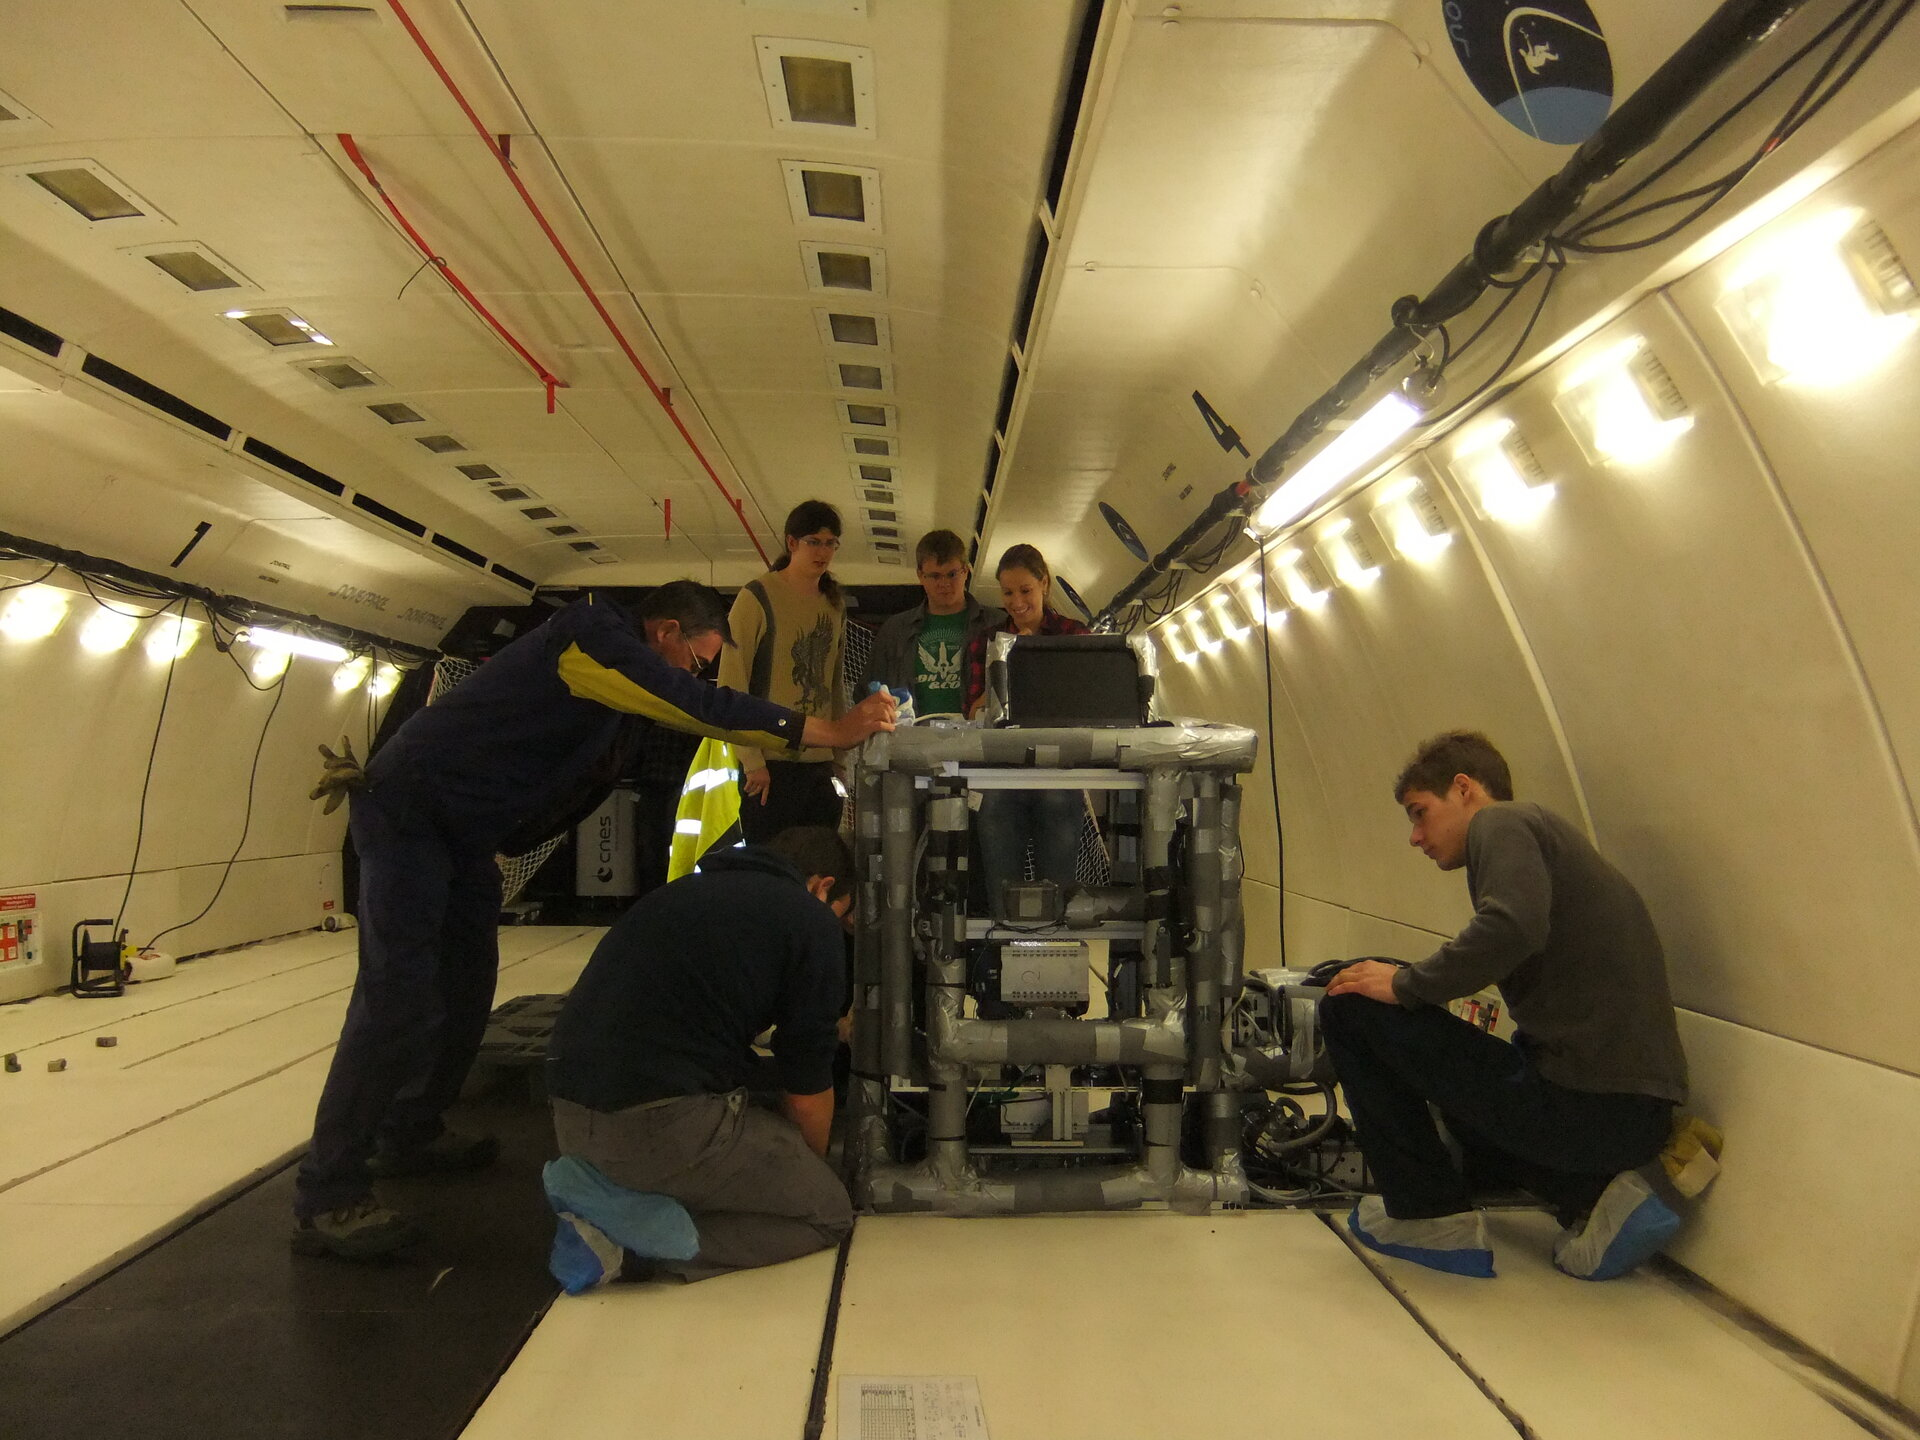 Dustbrothers experiment on Zero-G aircraft